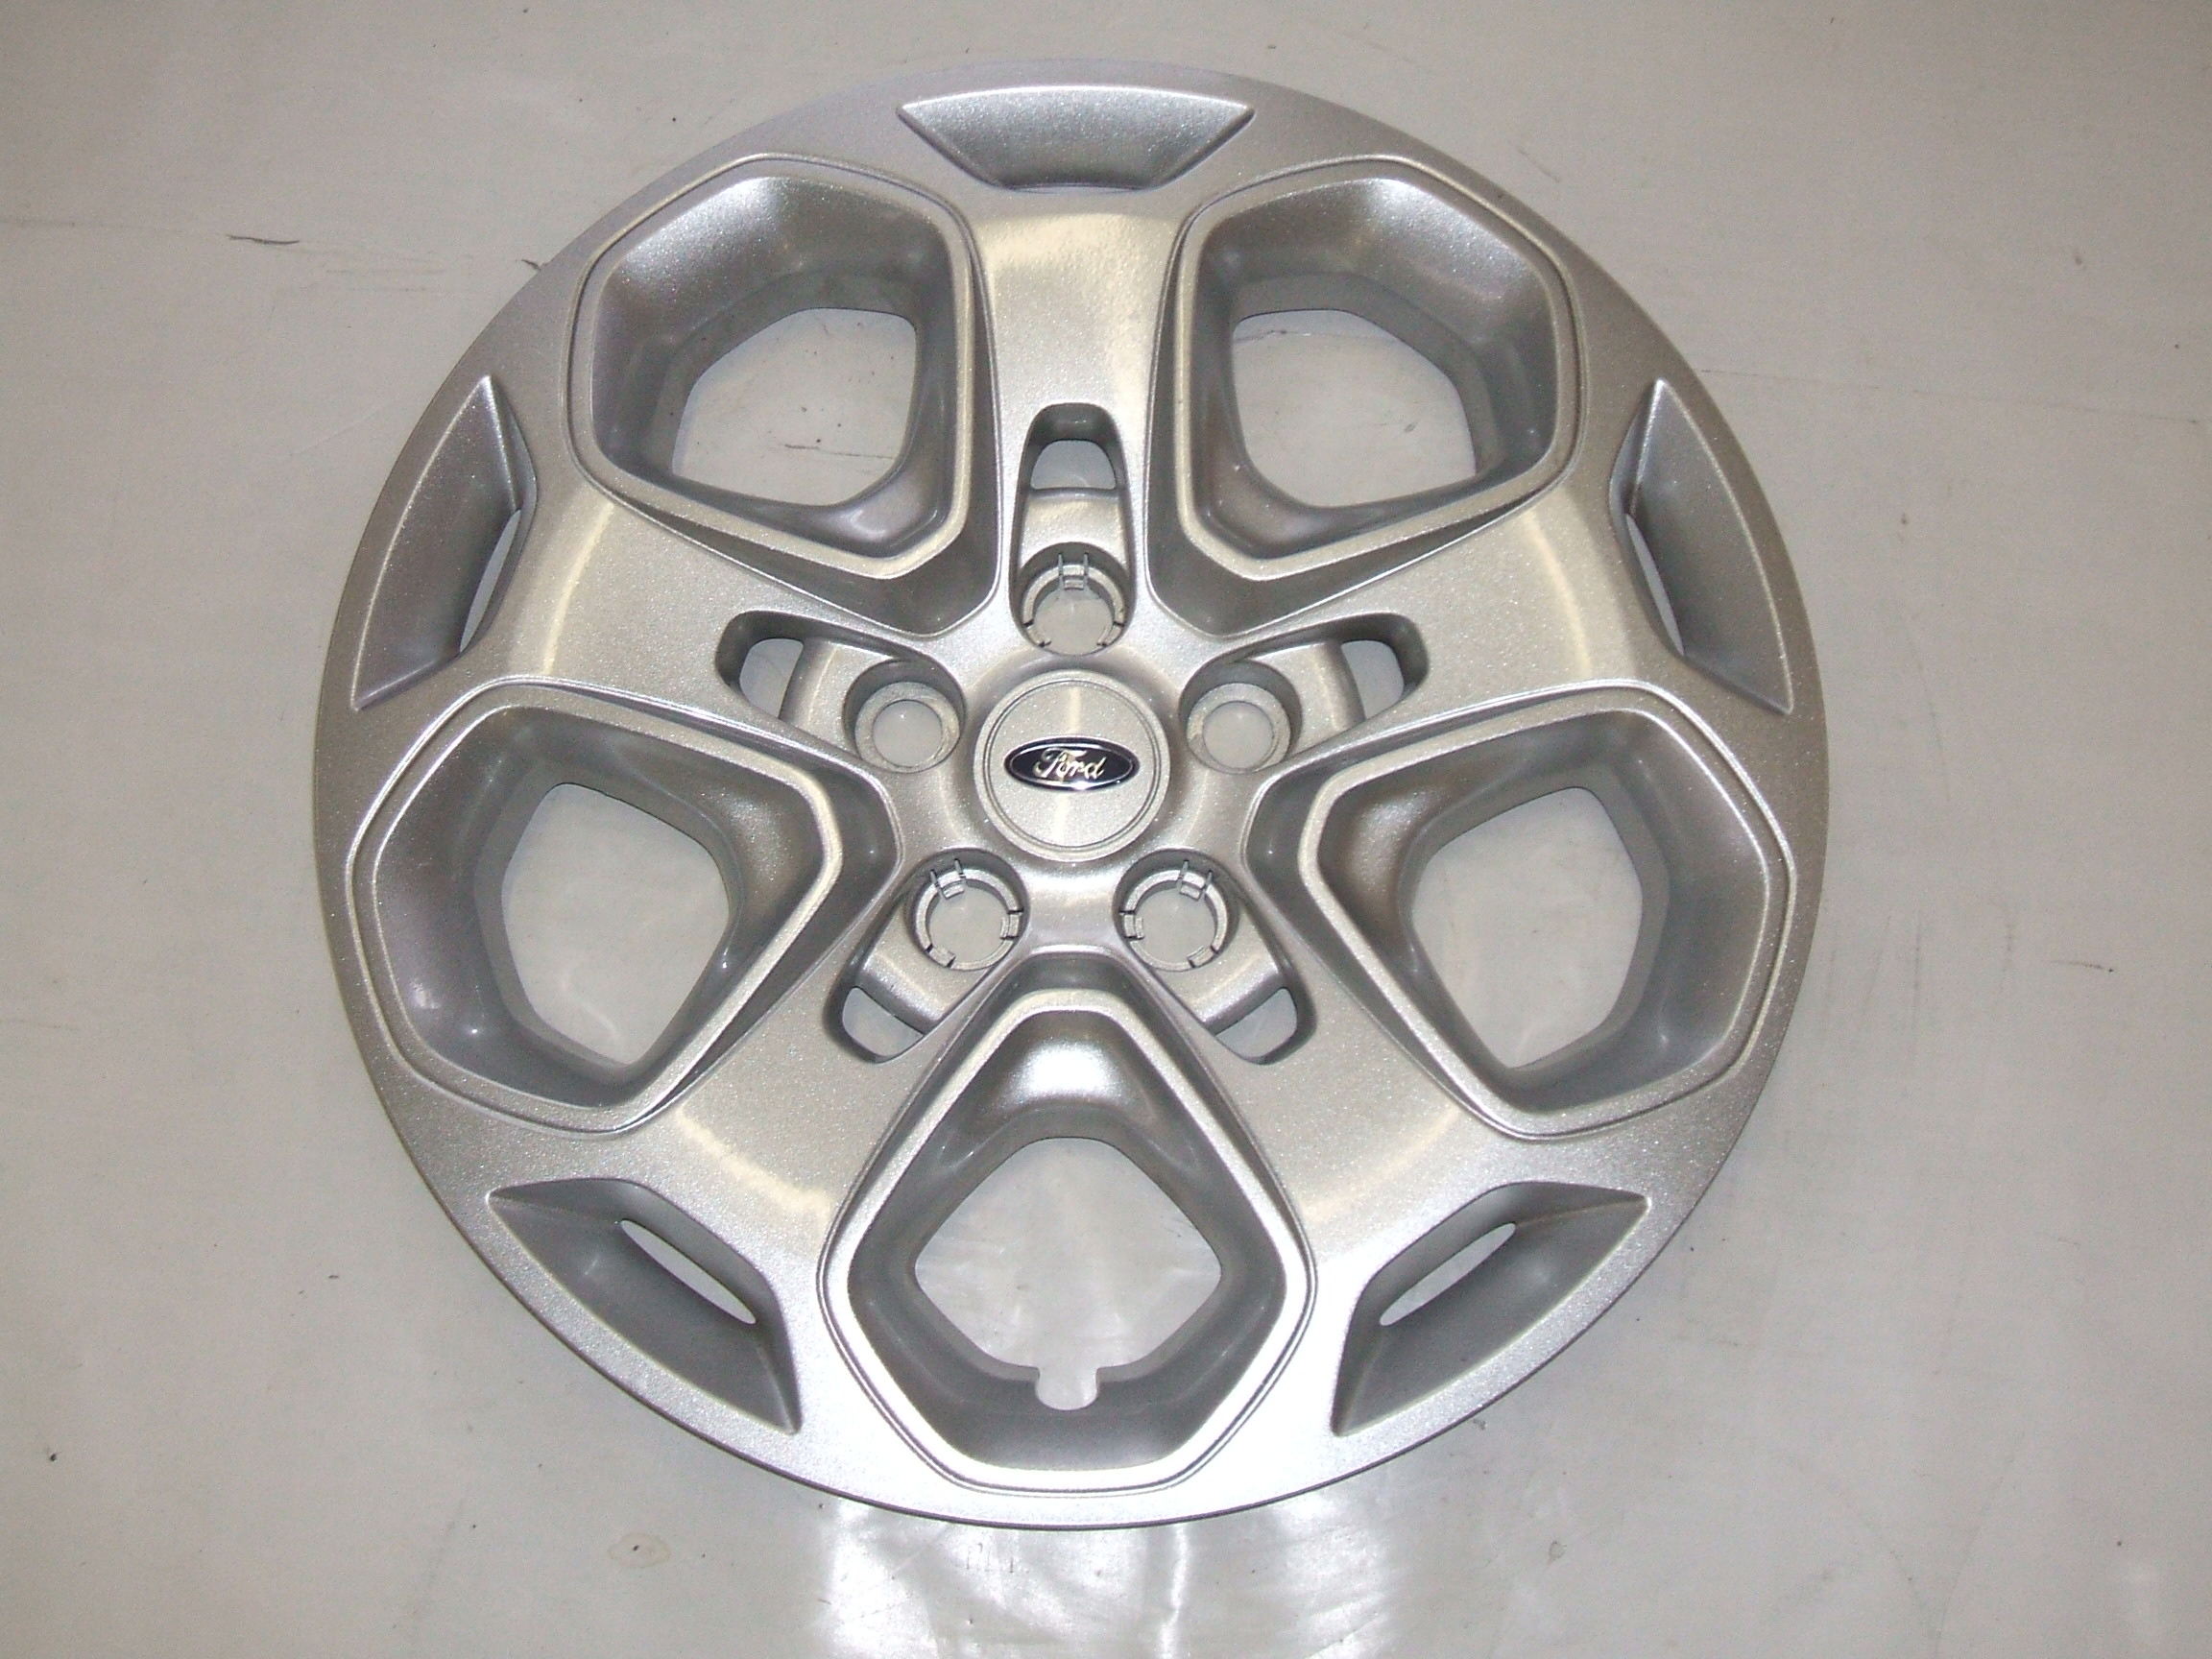 "Ford Fusion 10-12 17"" Hubcap 7052 P/N AE5C-1130-AD"